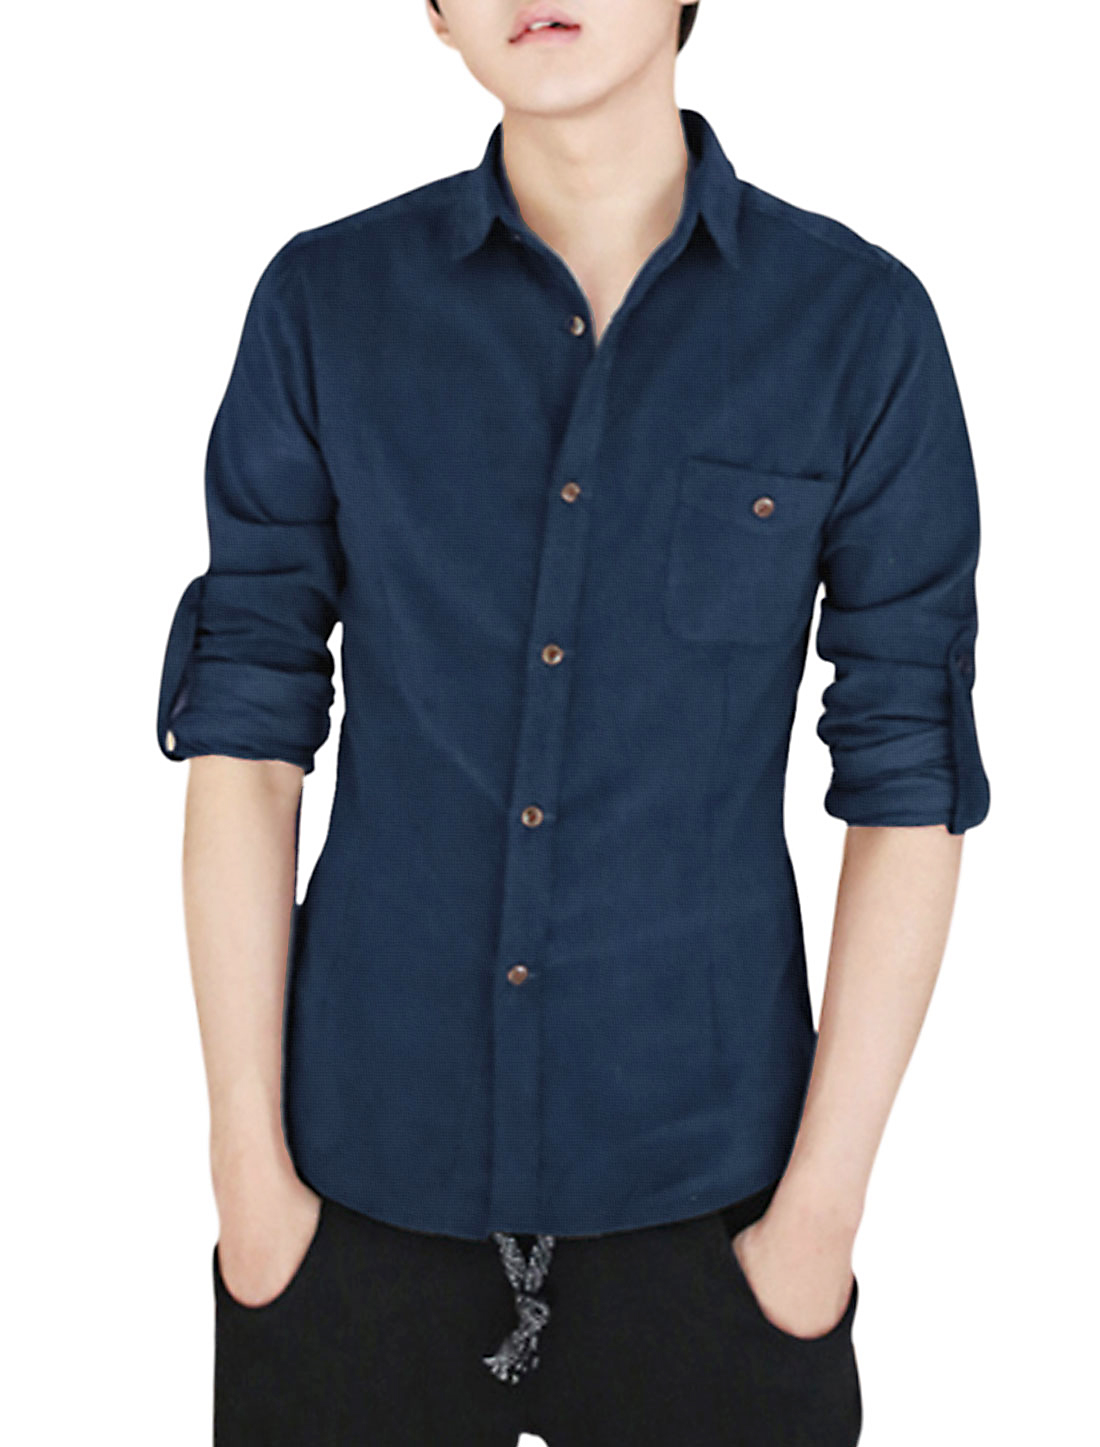 Men's Slim Fit Button Closed Point Collar Corduroy Shirt (Size S / 36)